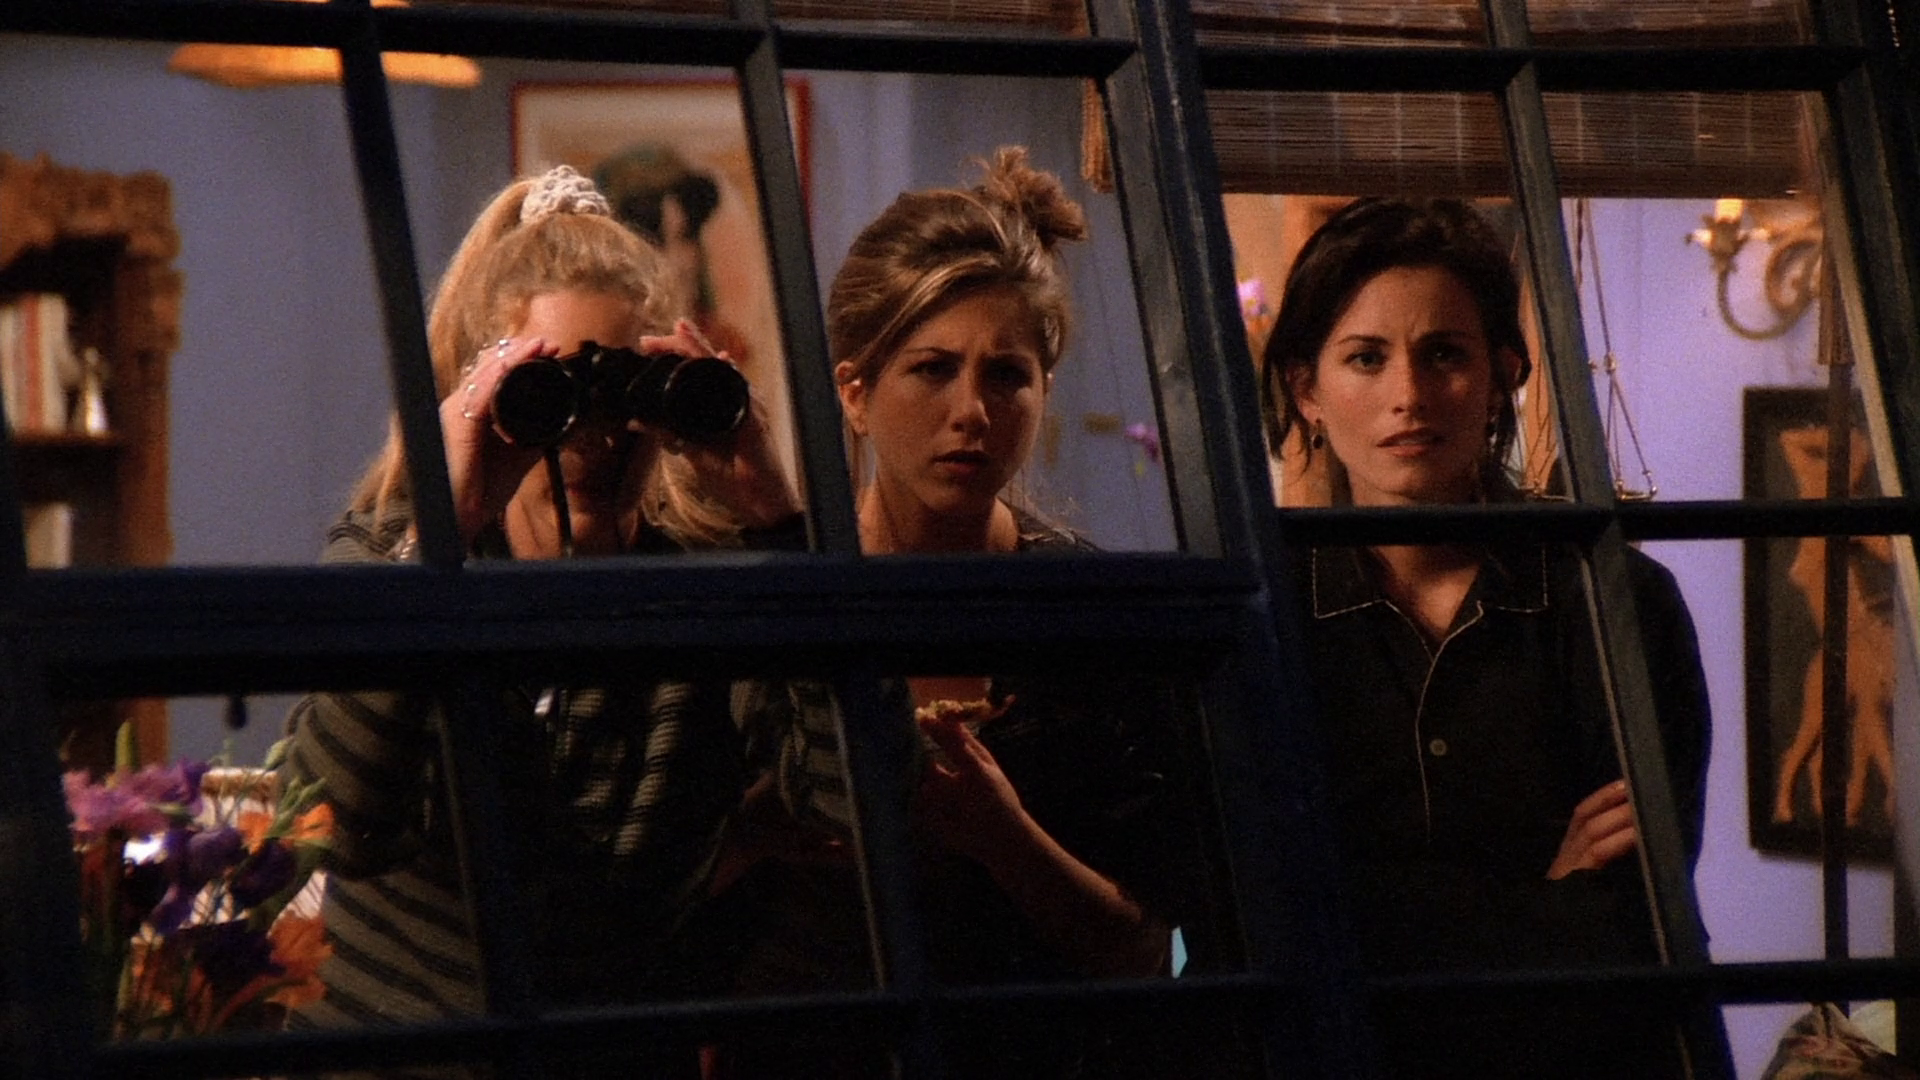 Friends: The Complete Series (Blu-ray) : DVD Talk Review of